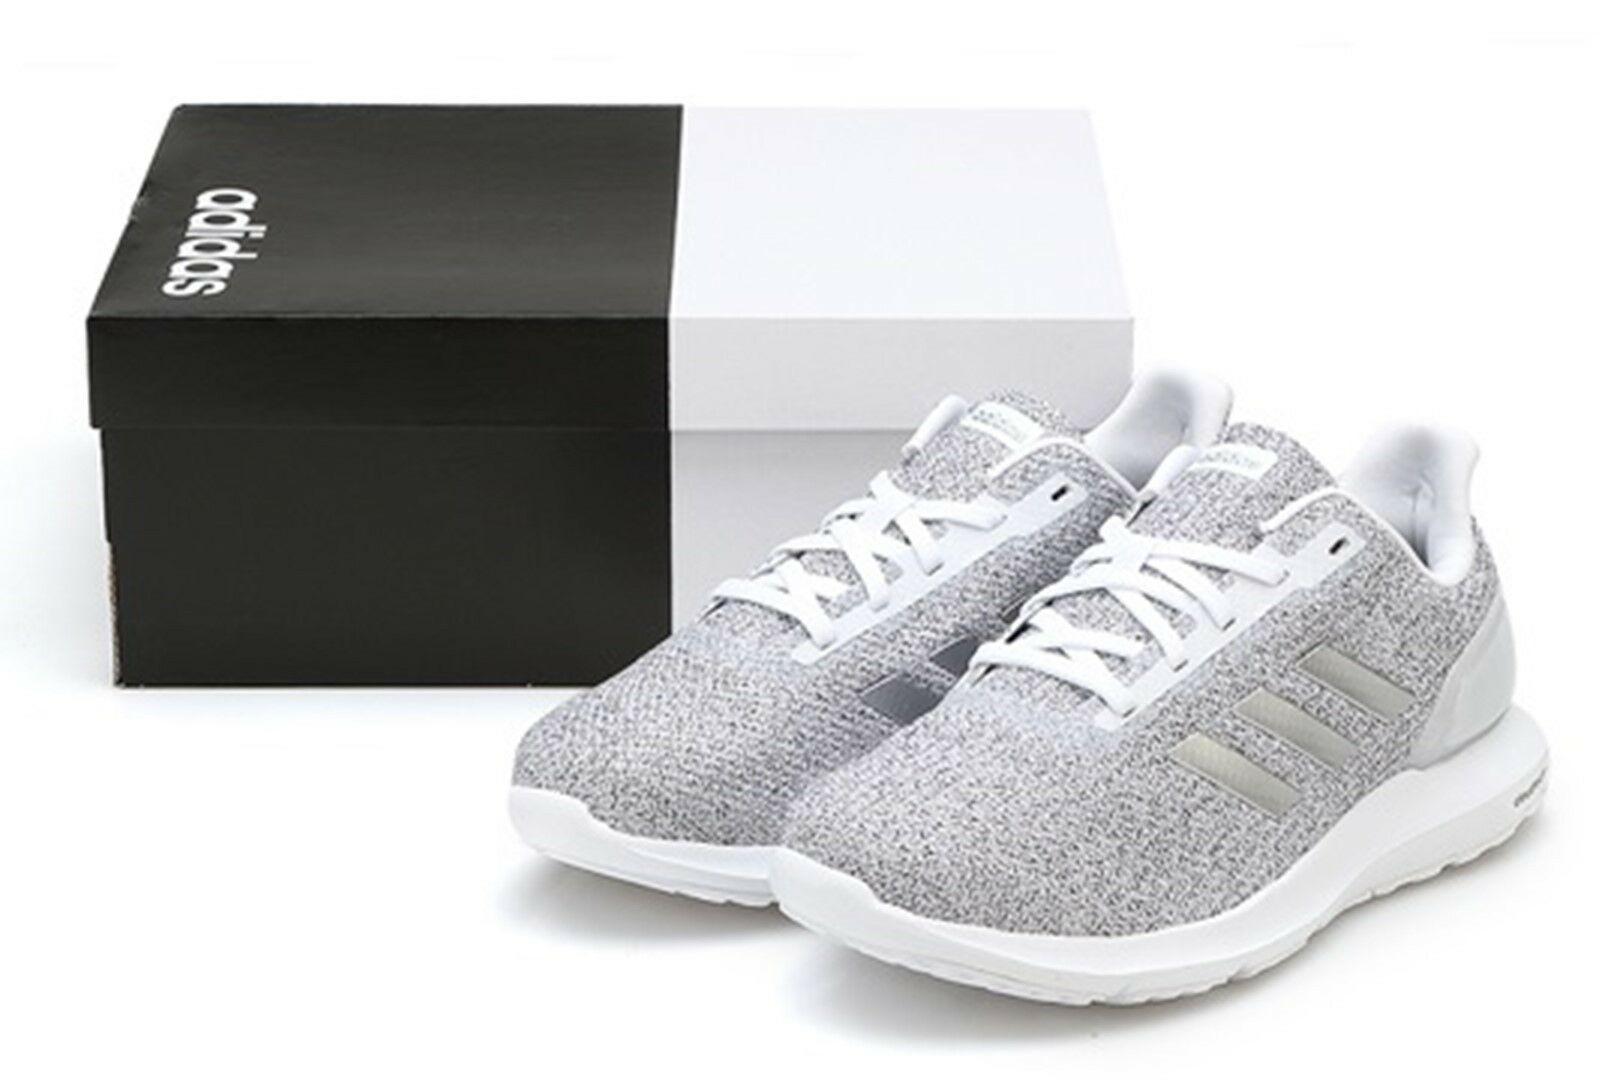 Adidas Women Cosmic 2 Training shoes Running White Sneakers GYM Boot shoes DB1760